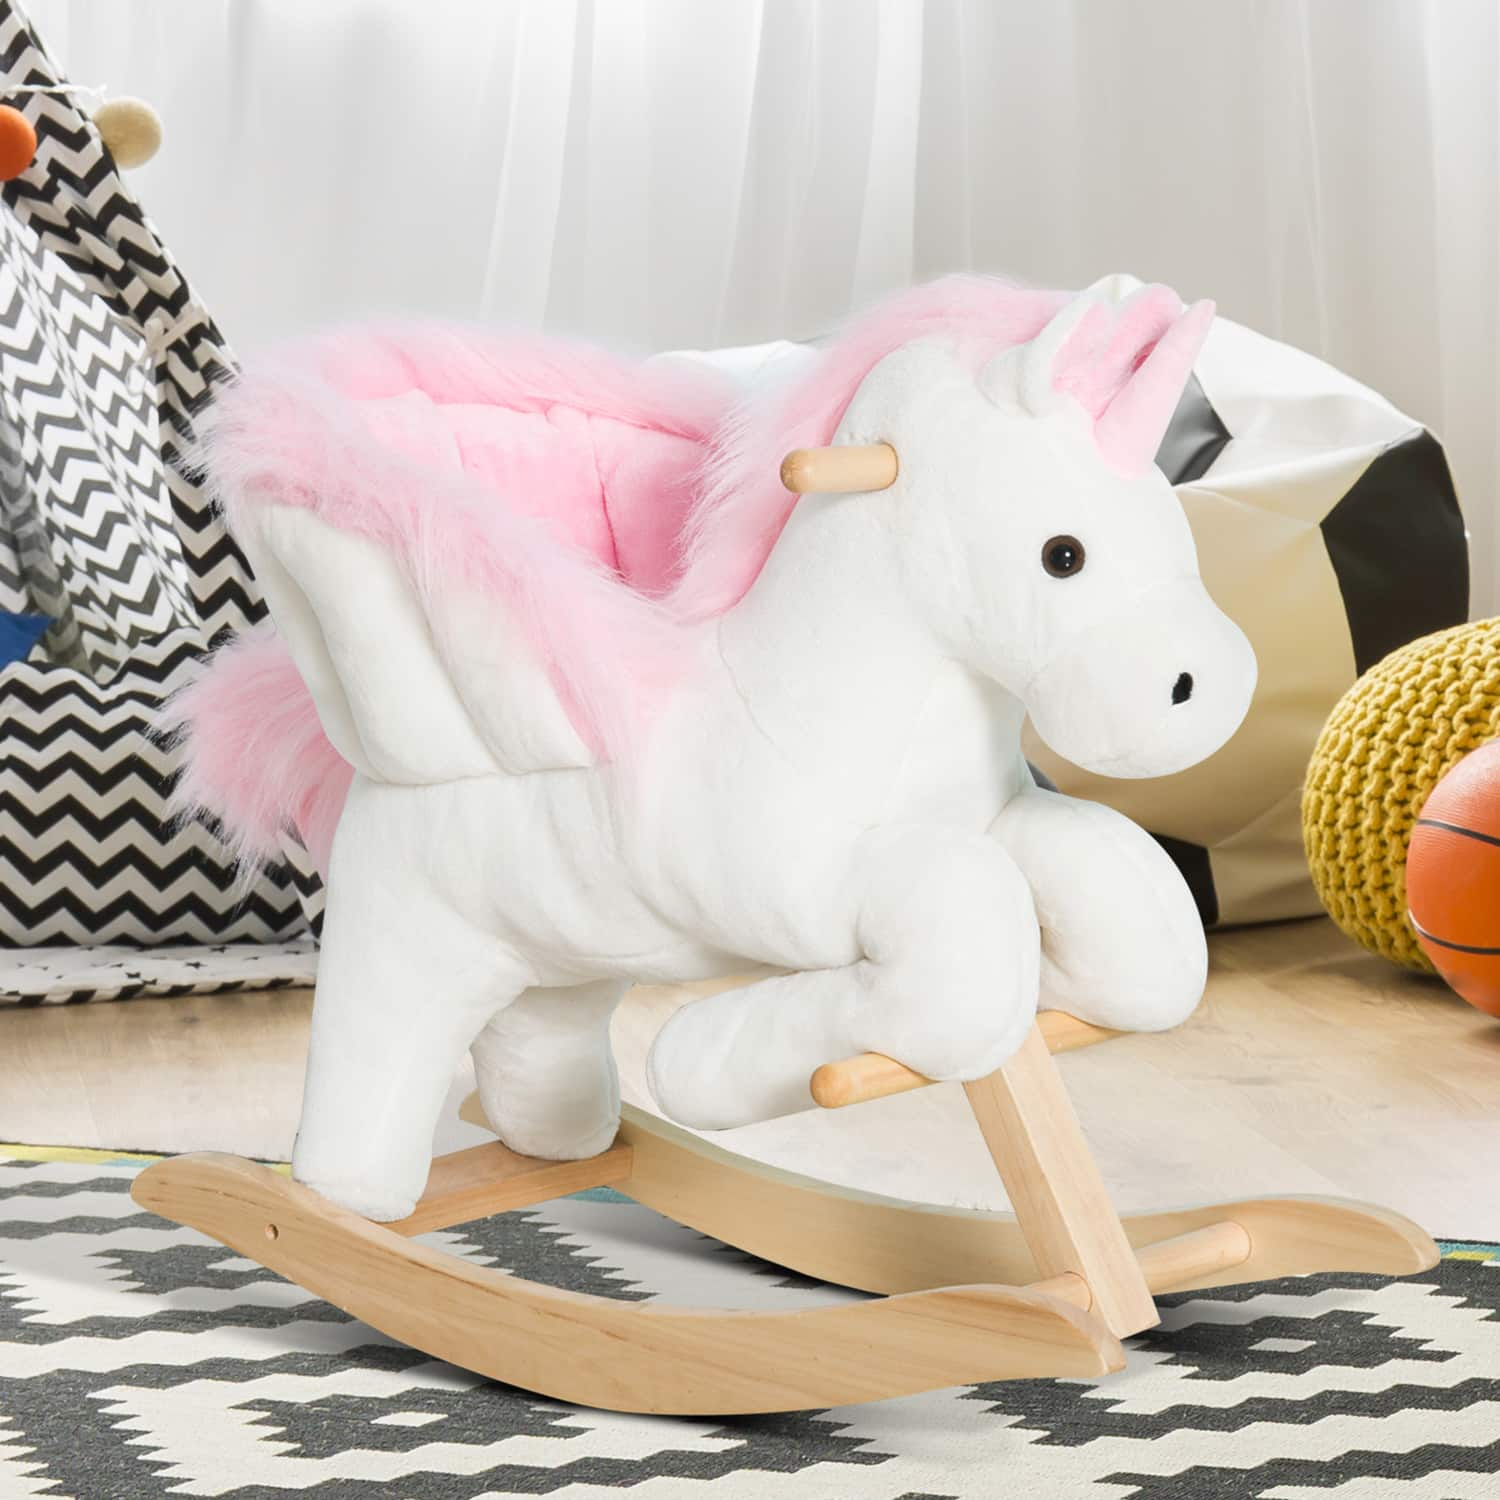 Qaba Kids Ride-On Unicorn Rocking Horse with Sing Along Songs and Safety Seatbelt- $54.99 + Free Shipping